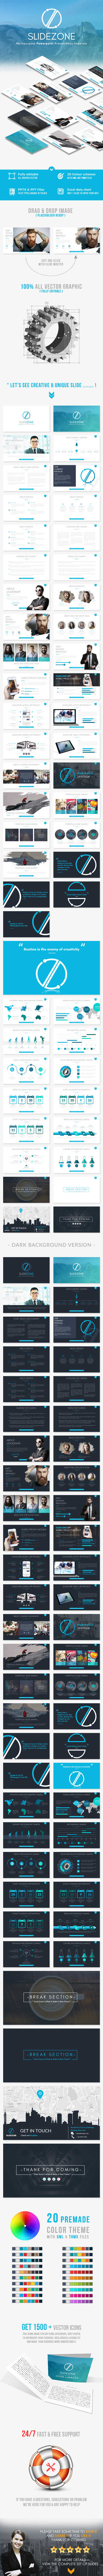 GraphicRiver SLIDEZONE Powerpoint Presentation Template 20873380